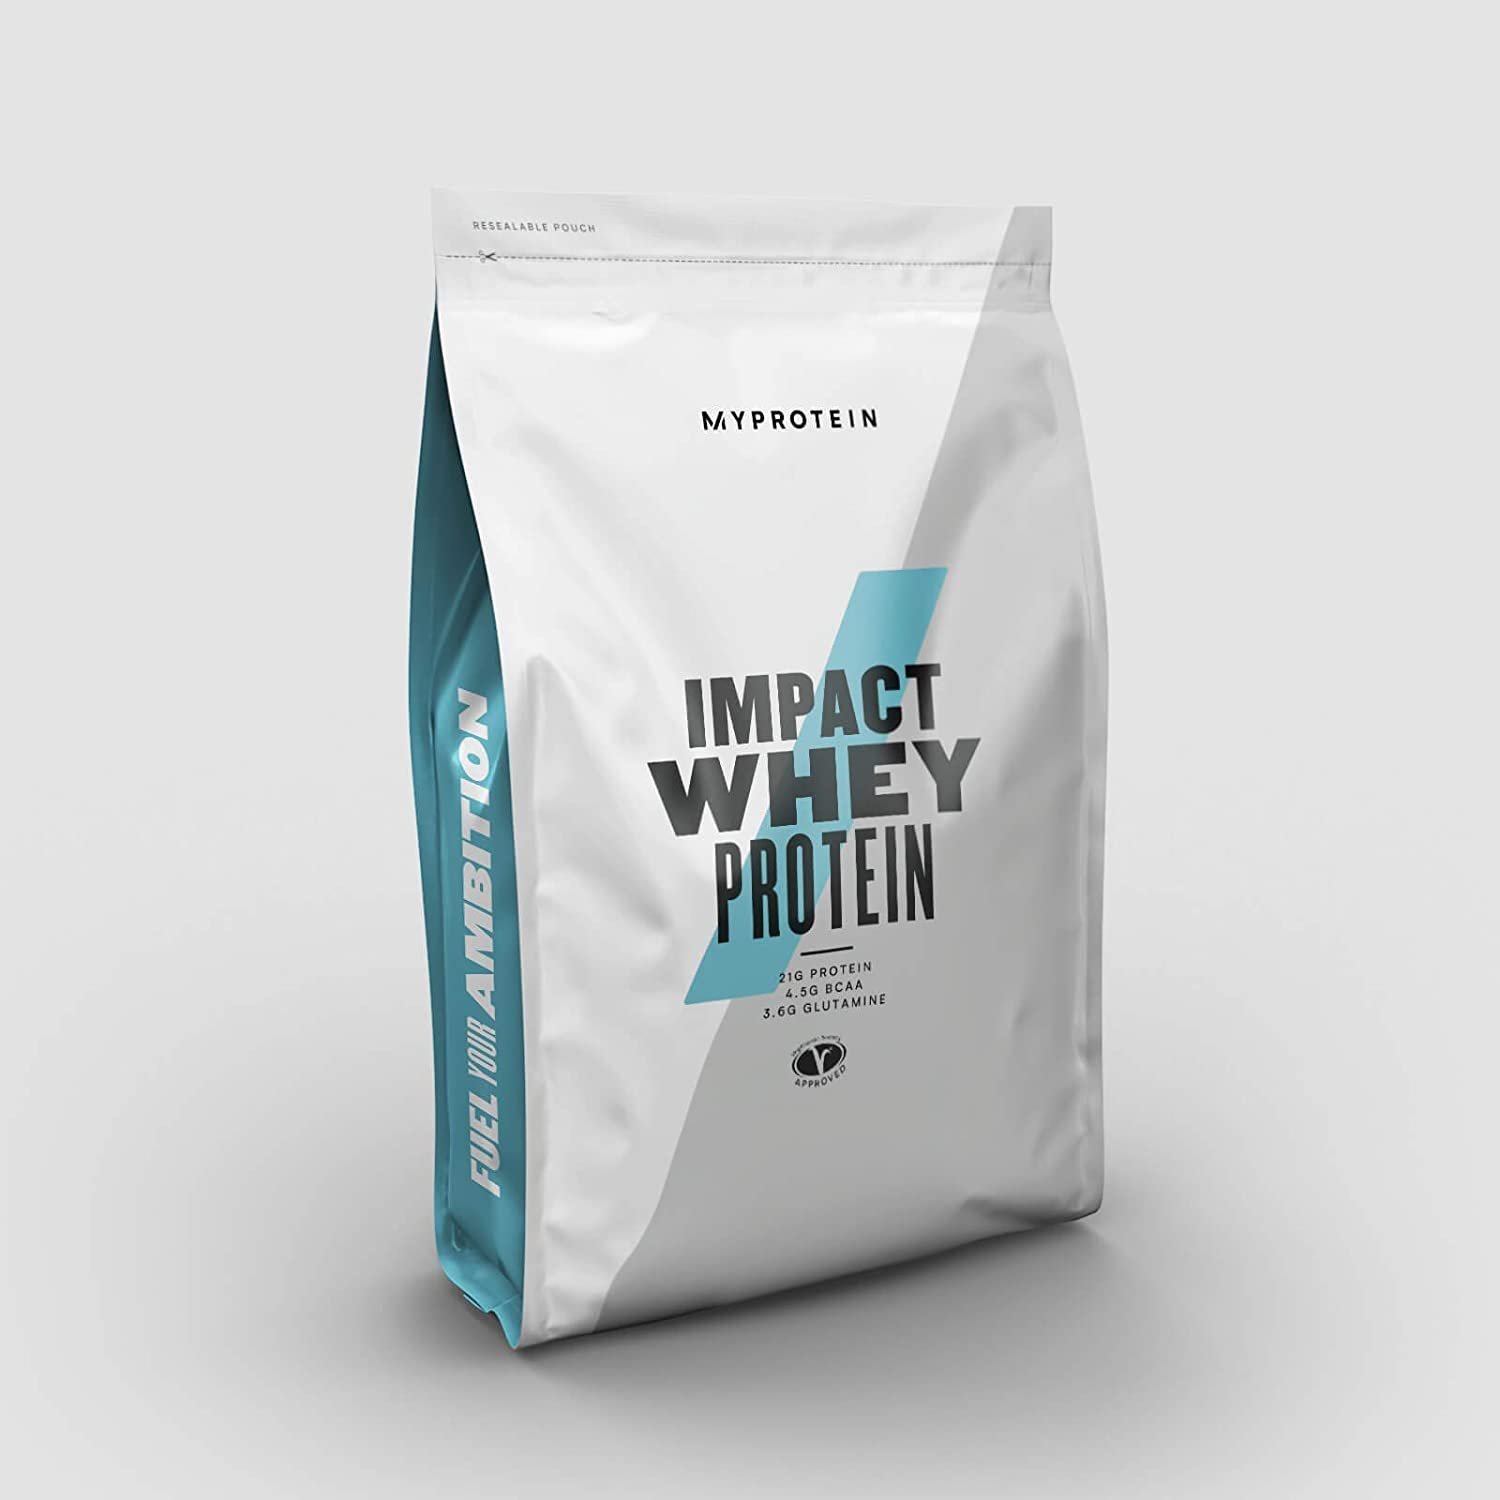 Amazon.com: Myprotein Impact Whey Protein Blend (Chocolate Brownie, 5.5 lbs): Health & Personal Care